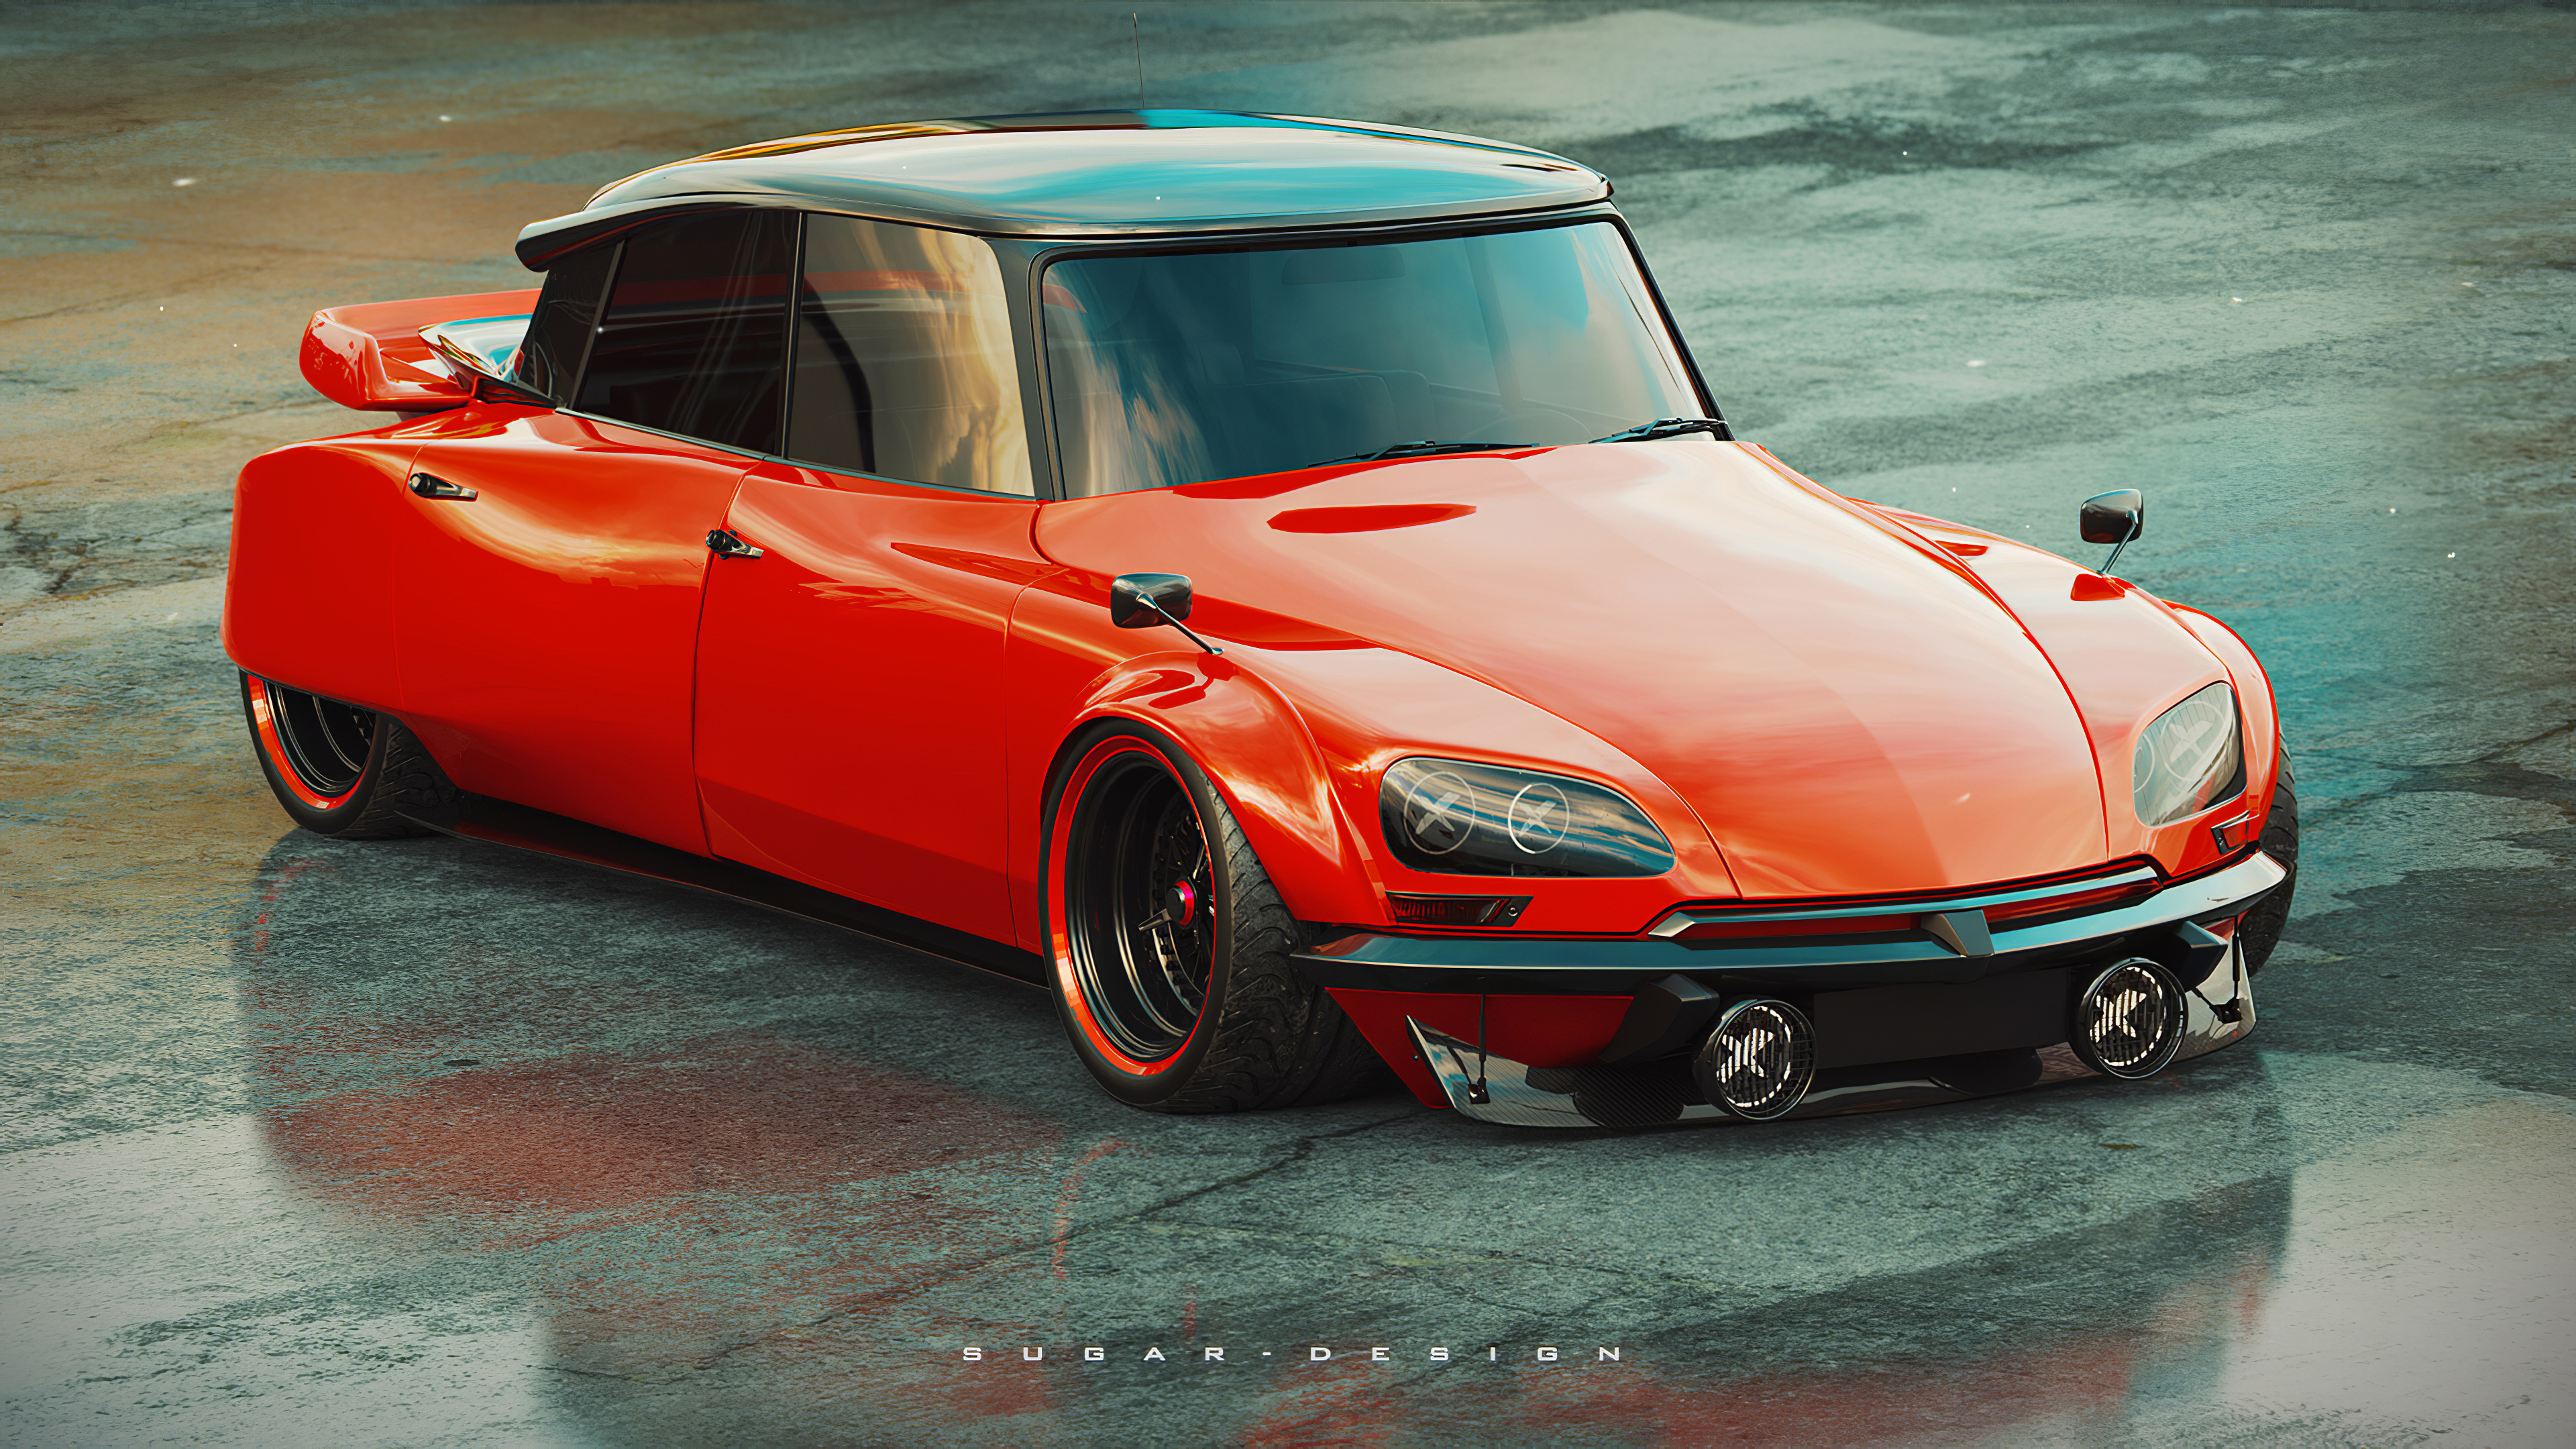 citroen ds concept art 1577653827 - Citroen Ds Concept Art - Citroen Ds Concept 4k wallpaper